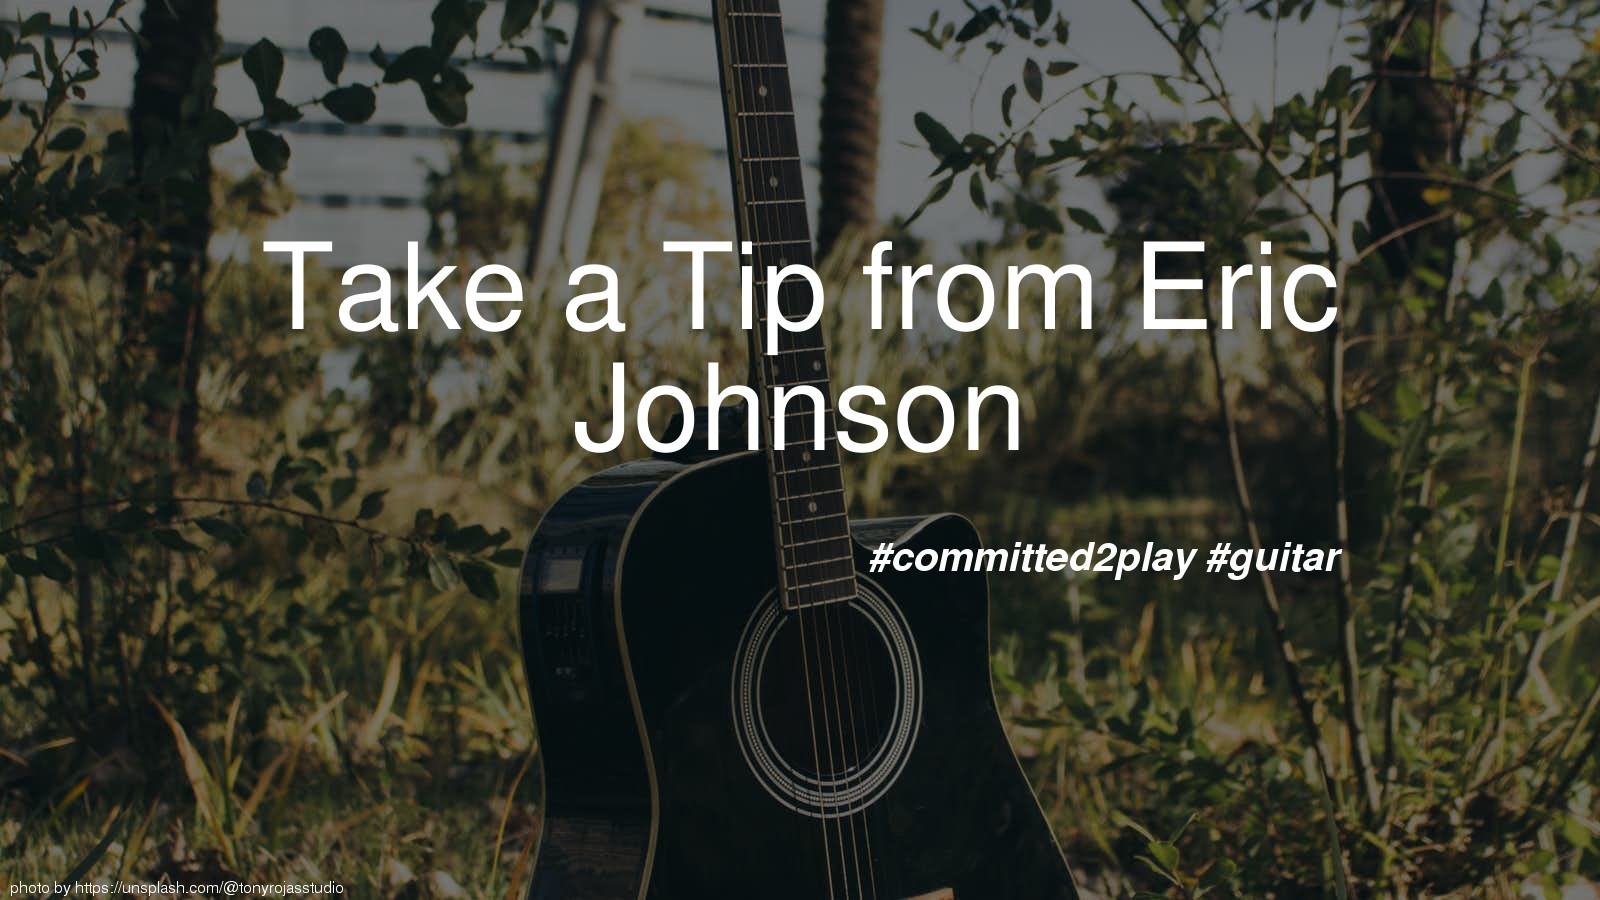 Take a Tip from Eric Johnson